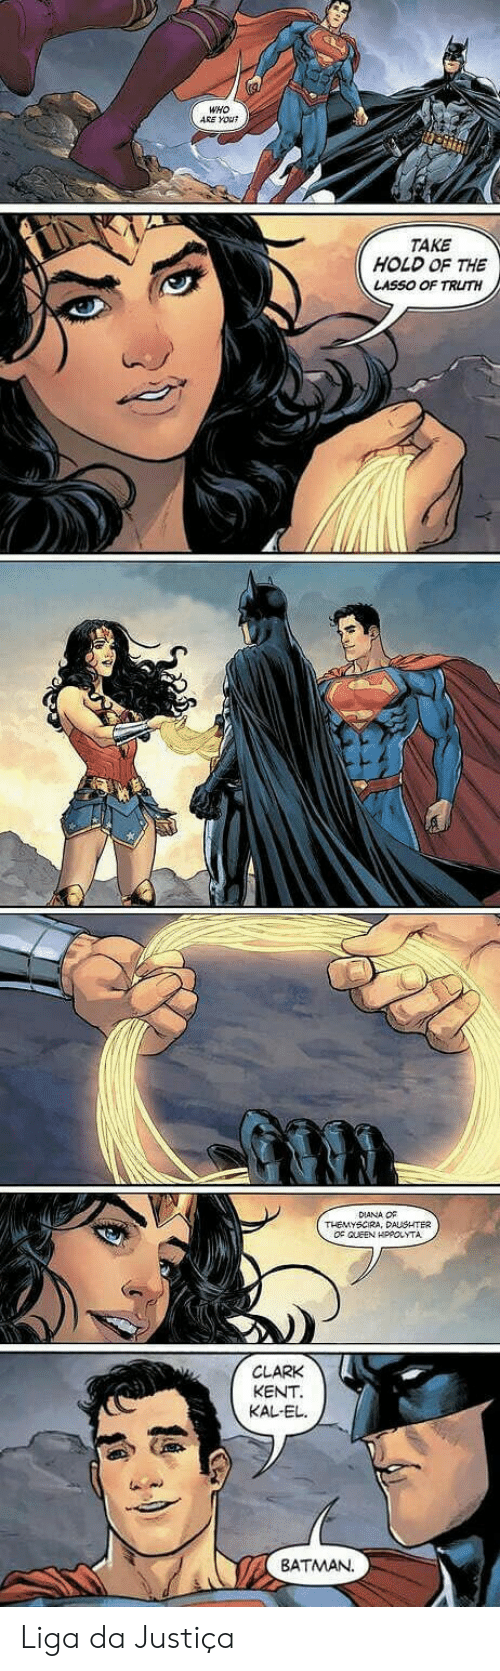 Batman, Clark Kent, and Truth: WHO  ARE YOUR  TAKE  HOLD OF THE  LASSO OF TRUTH  ●複  DIANA OF  OF CUEEN HPPOLYTA  CLARK  KENT  KAL-EL  儿  BATMAN. Liga da Justiça